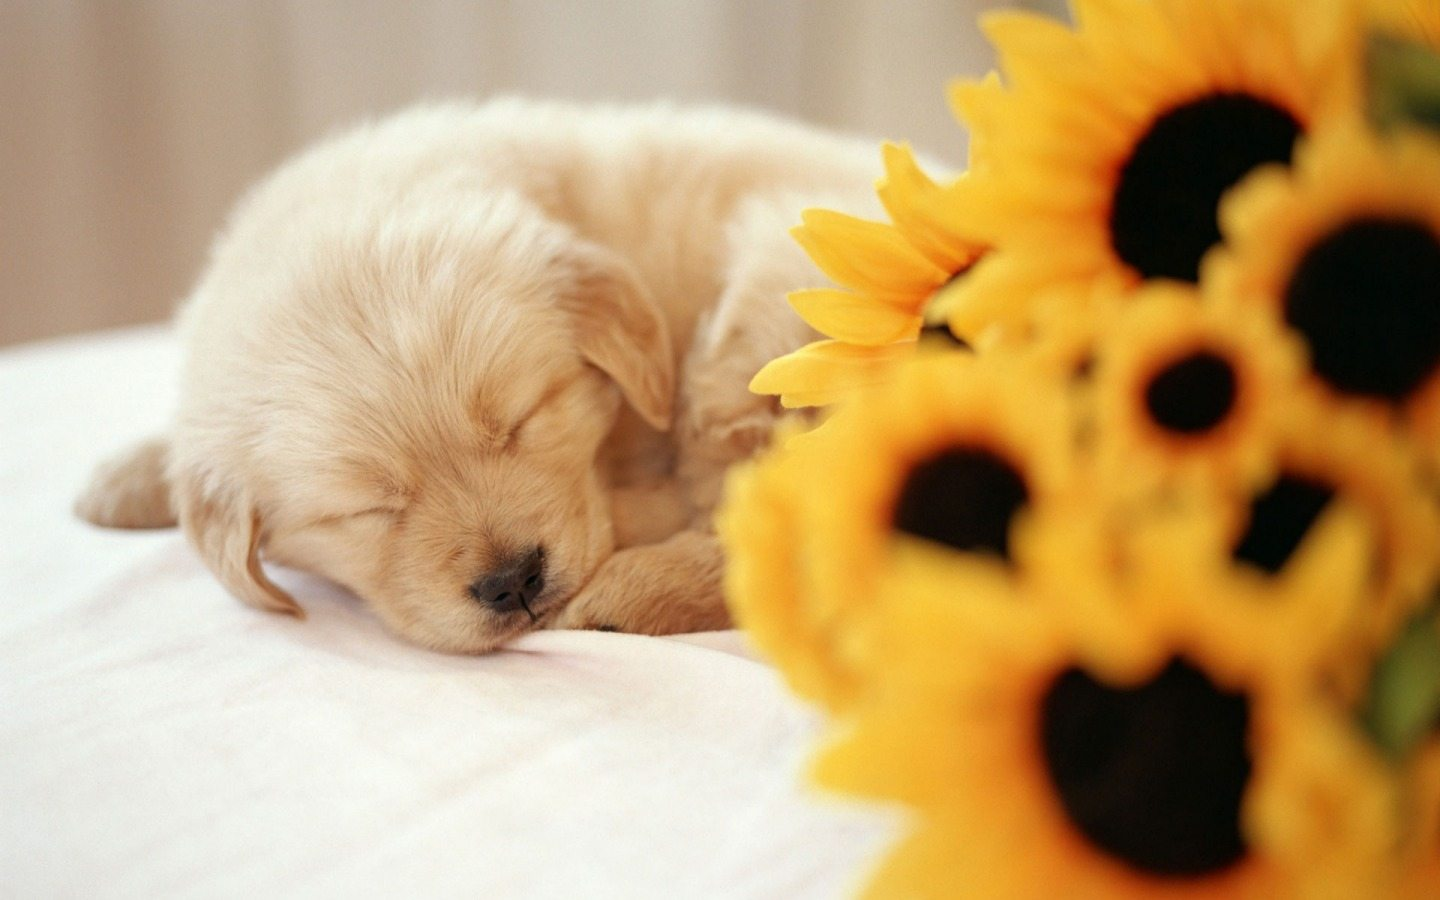 -downloadfiles-wallpapers-1440_900_widescreen-sleeping_puppy_wallpaper_dogs_animals_wallpaper_1440_900_widescreen_359